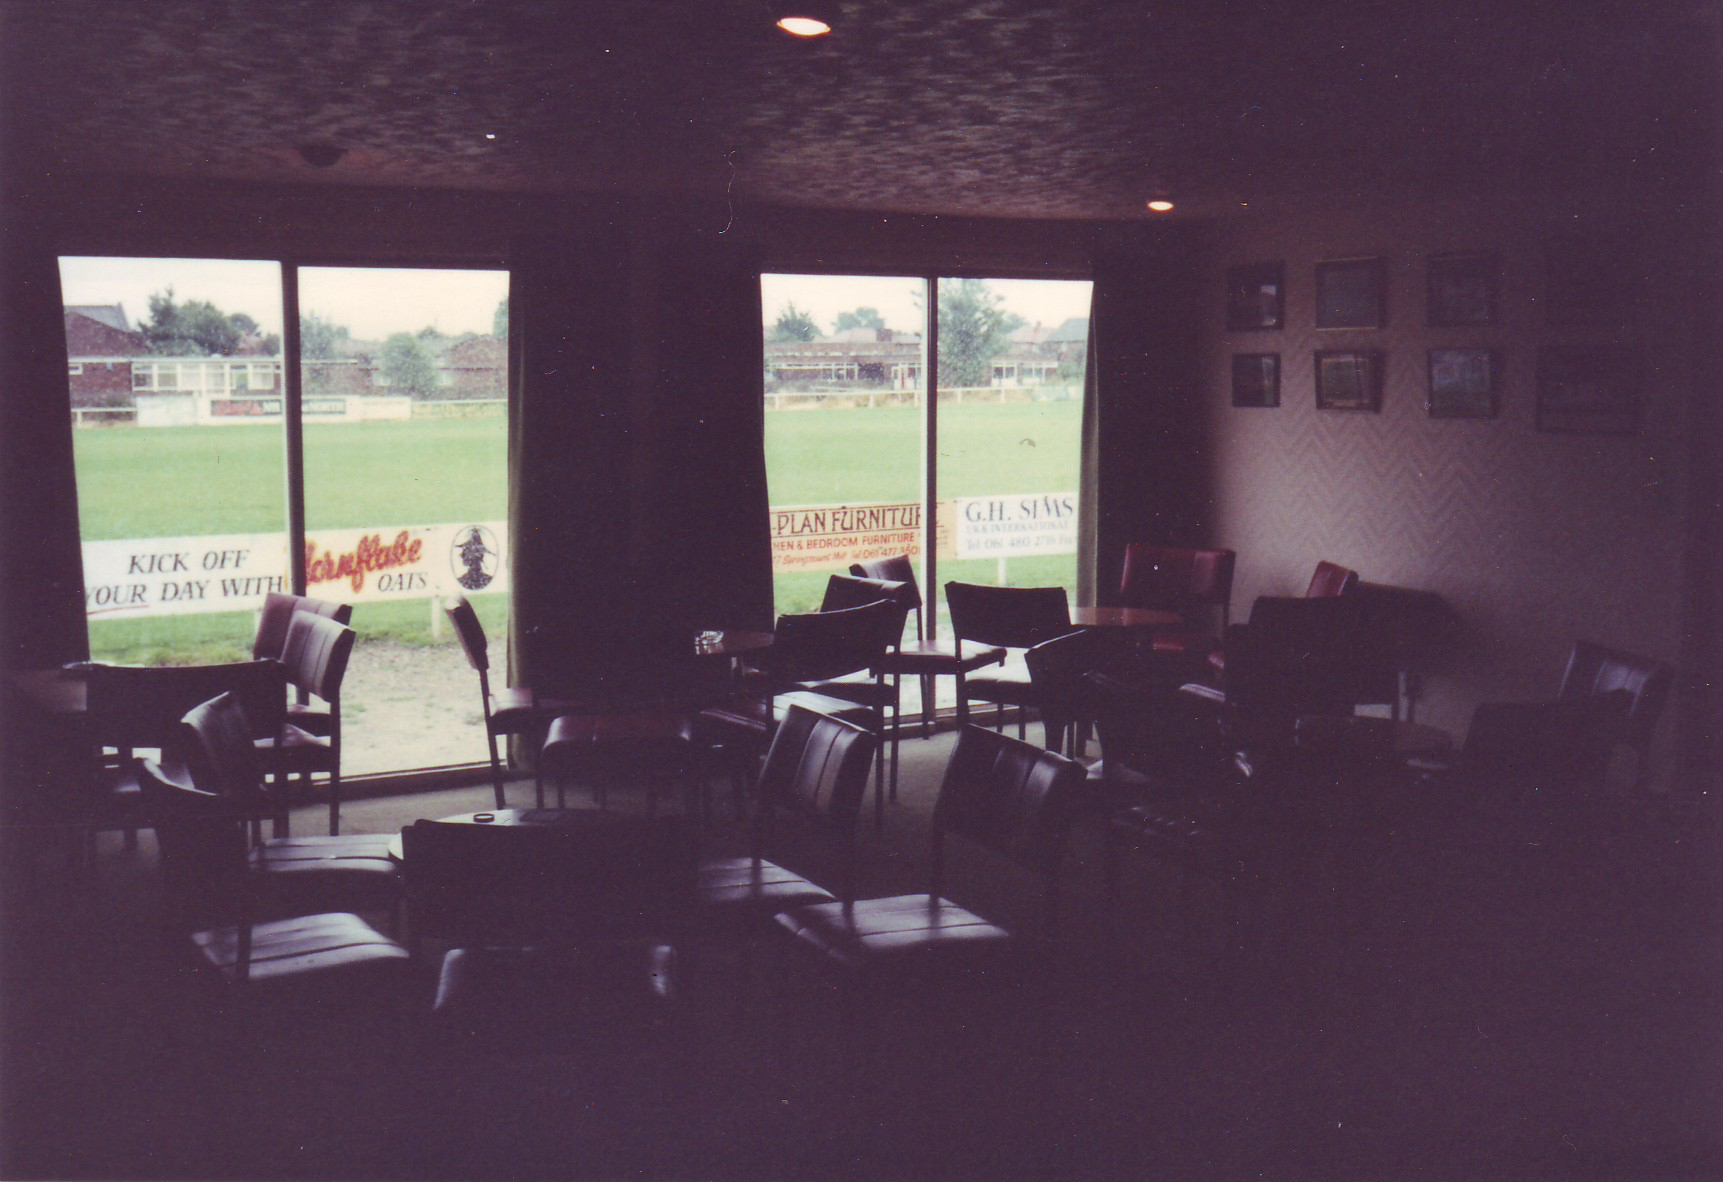 When it was first built, the (now demolished) clubhouse had patio doors that ran full height along the length of the building. Sadly these were broken by stray balls far too many times!